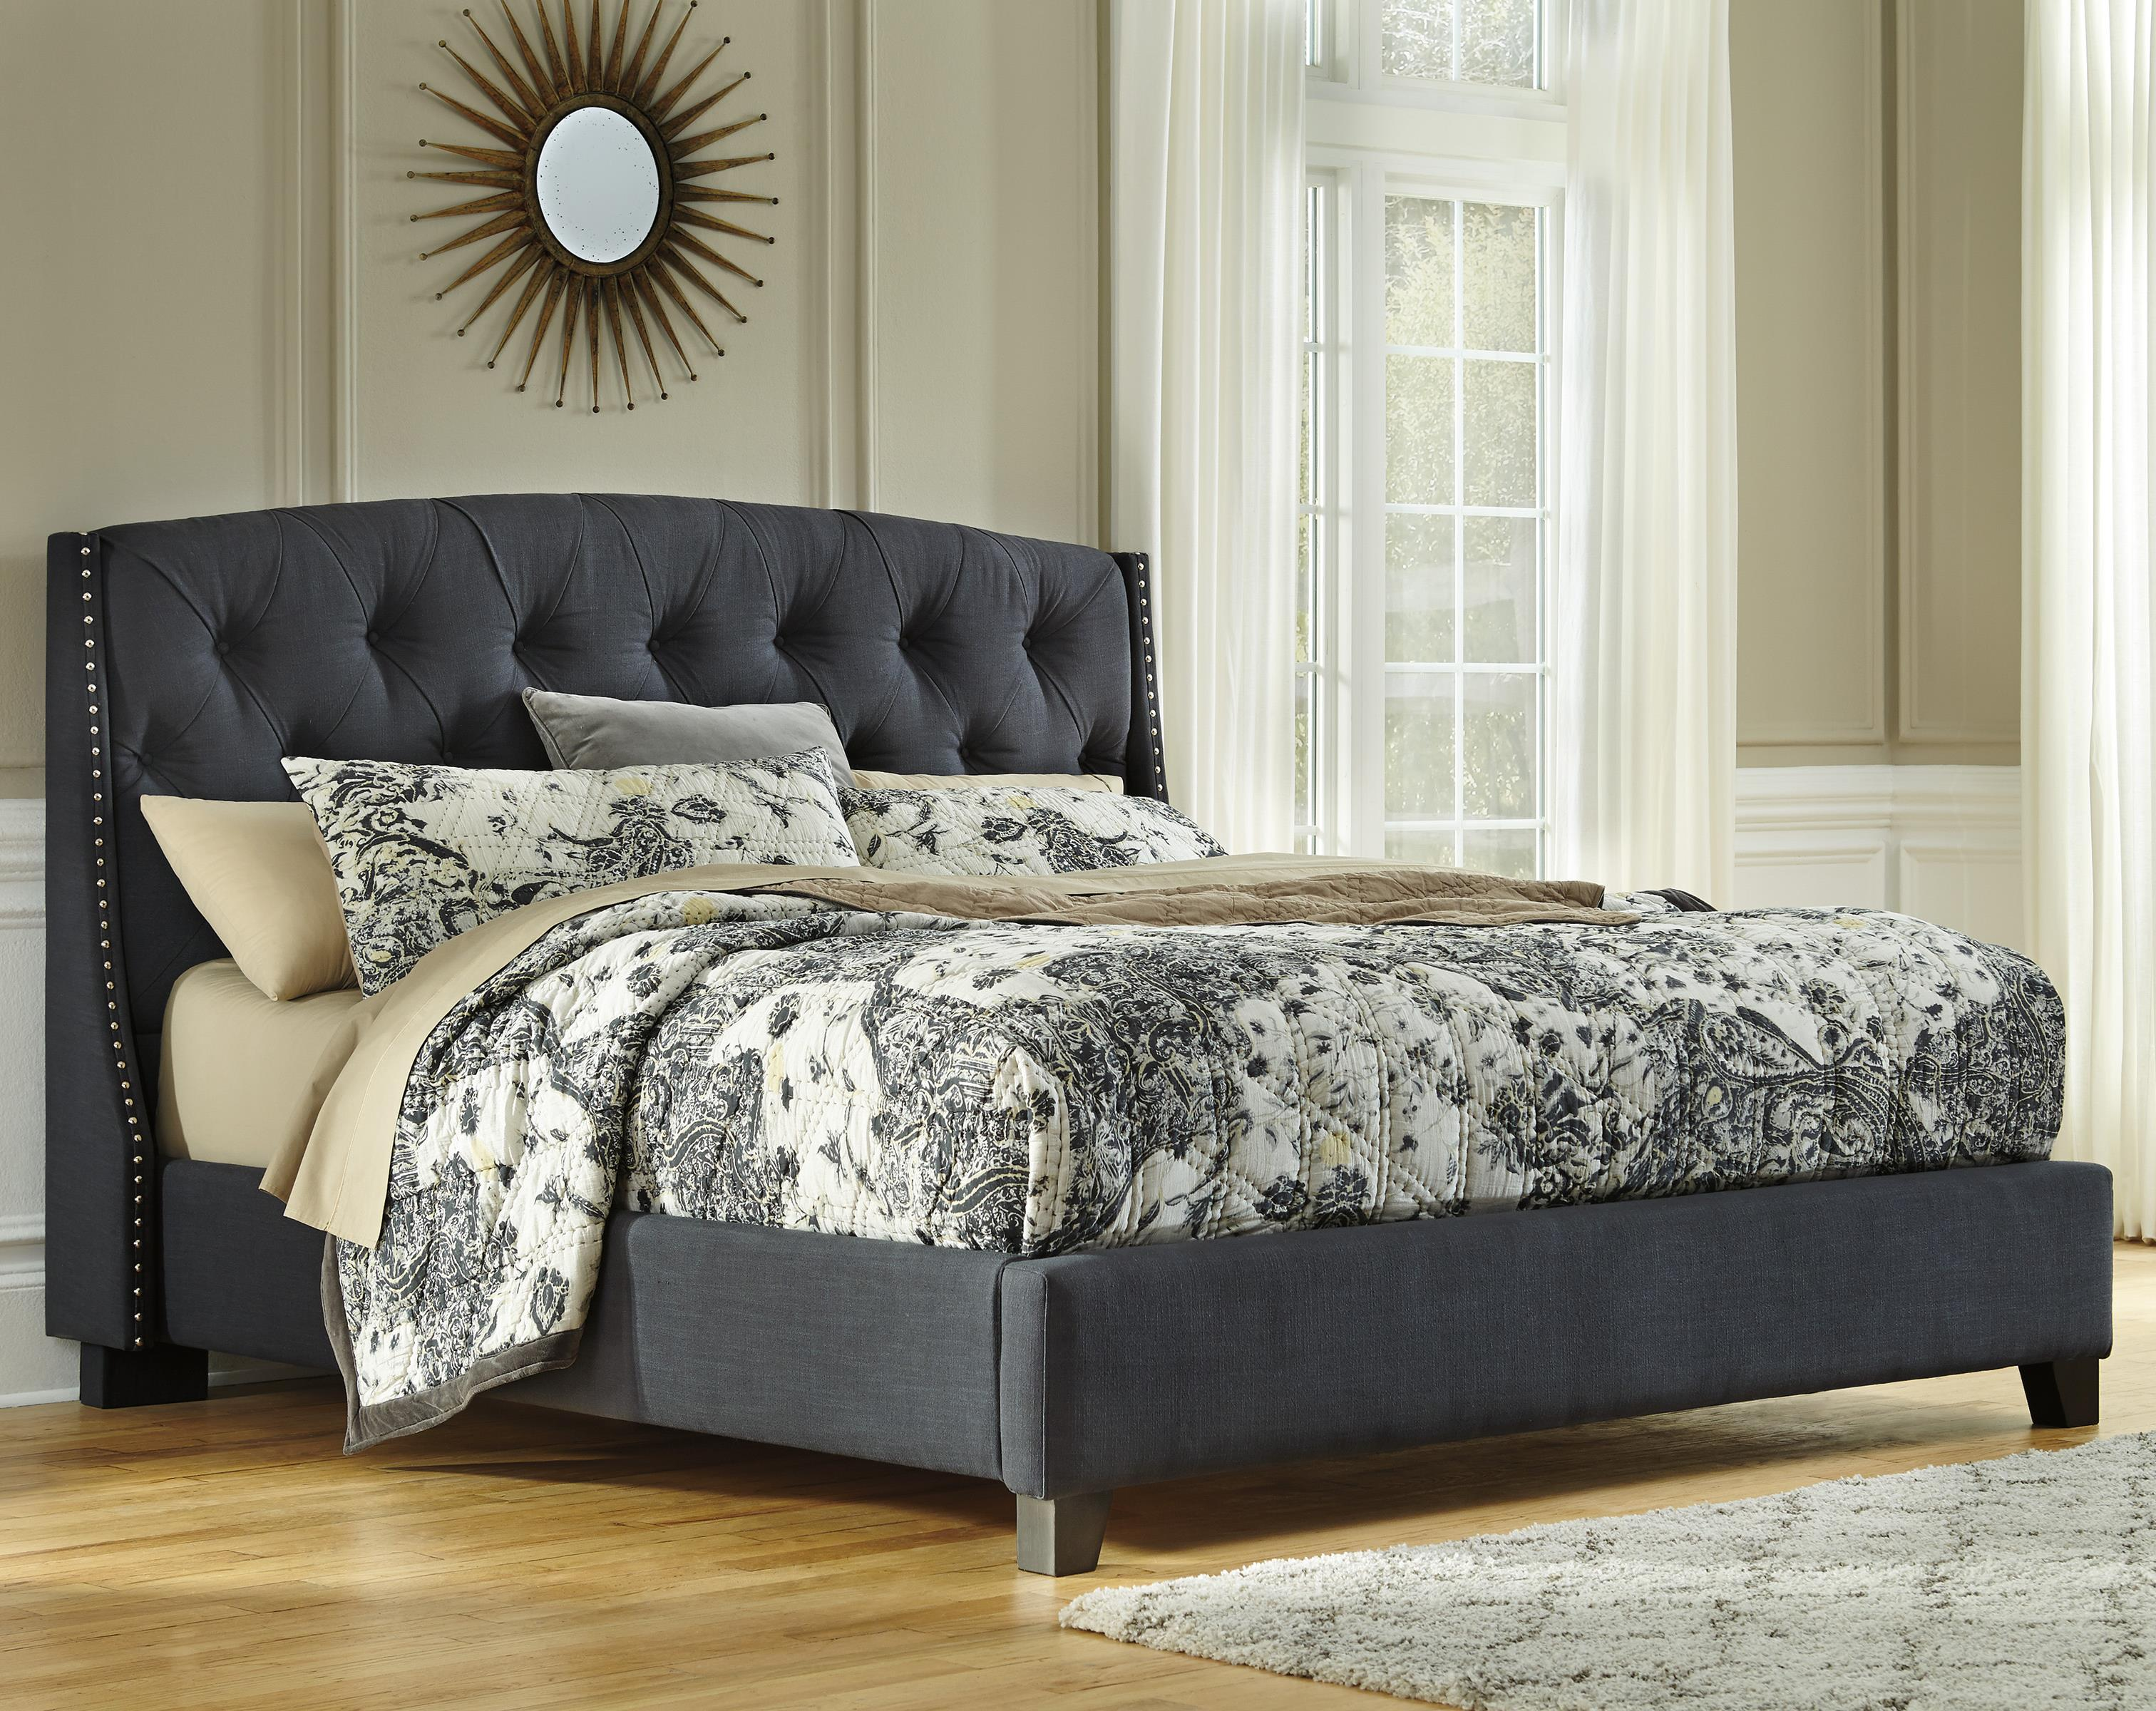 Queen Upholstered Bed In Dark Gray With Tufting And Nailhead Trim By Signature Design By Ashley